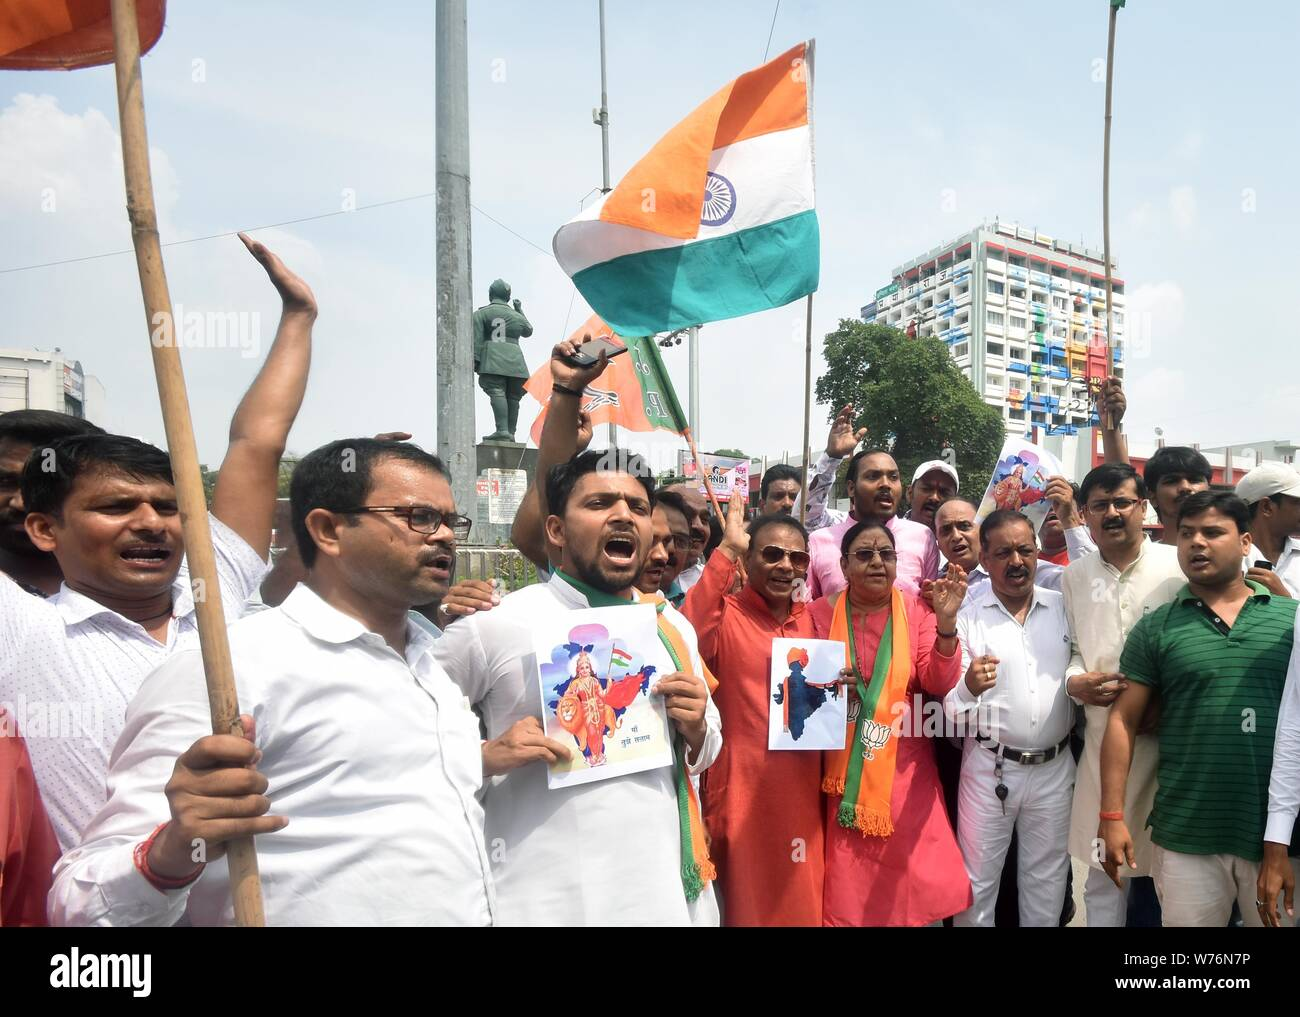 August 5, 2019: BJP supporters celebrate after Union Home Minister Amit Shah introduced the proposal to remove Article 370 in the state of Jammu and Kashmir, in Prayagraj, Monday, Aug 5, 2019. Credit: Prabhat Kumar Verma/ZUMA Wire/Alamy Live News Stock Photo